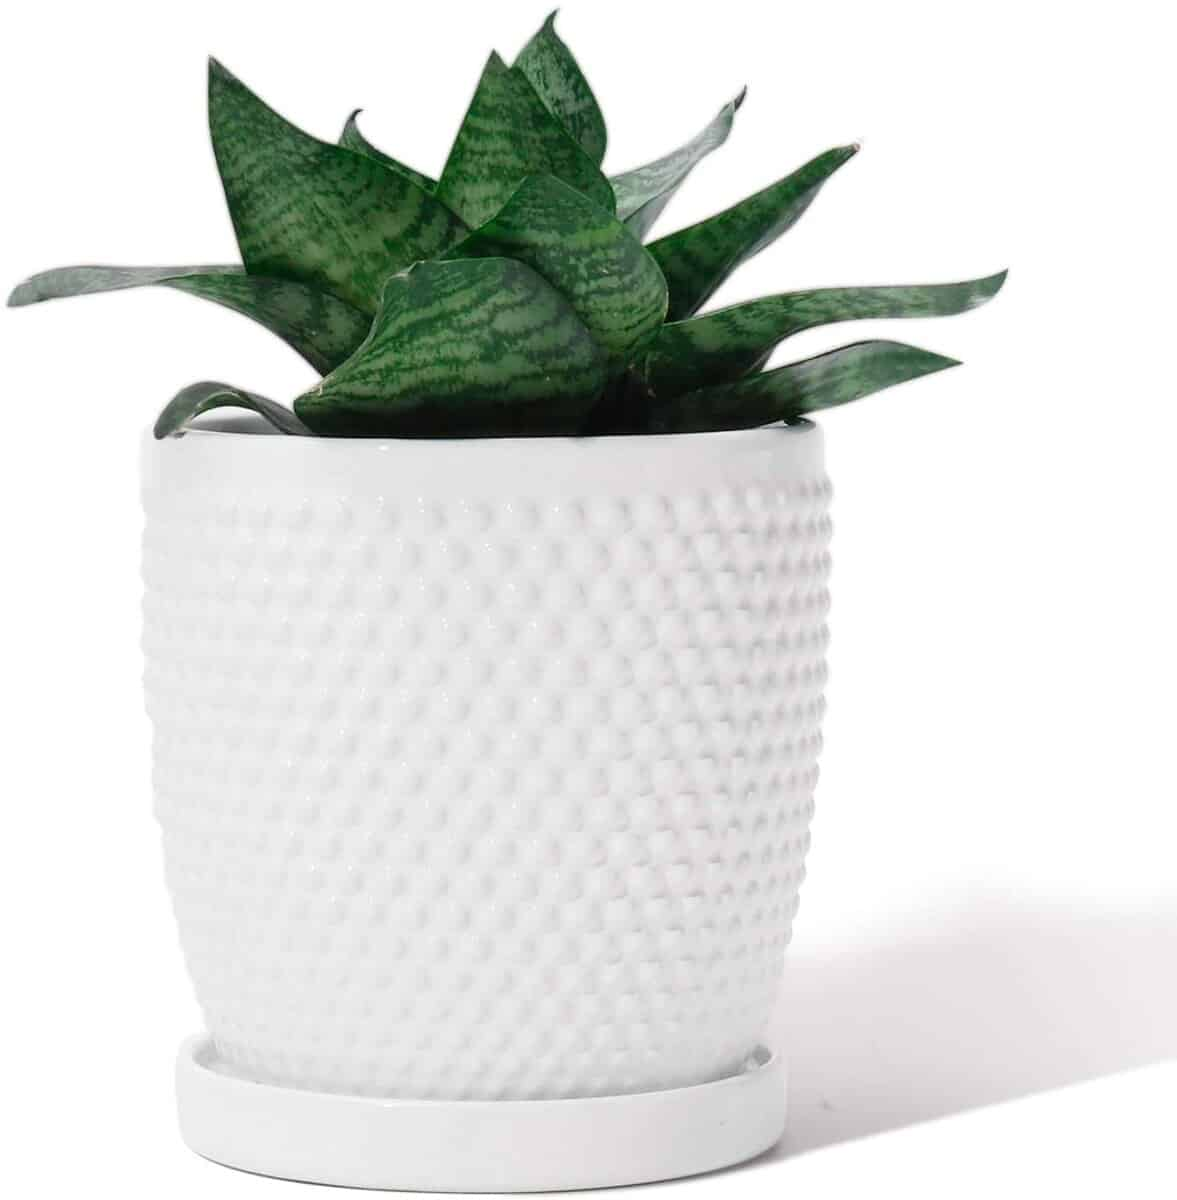 Chic planter from Amazon